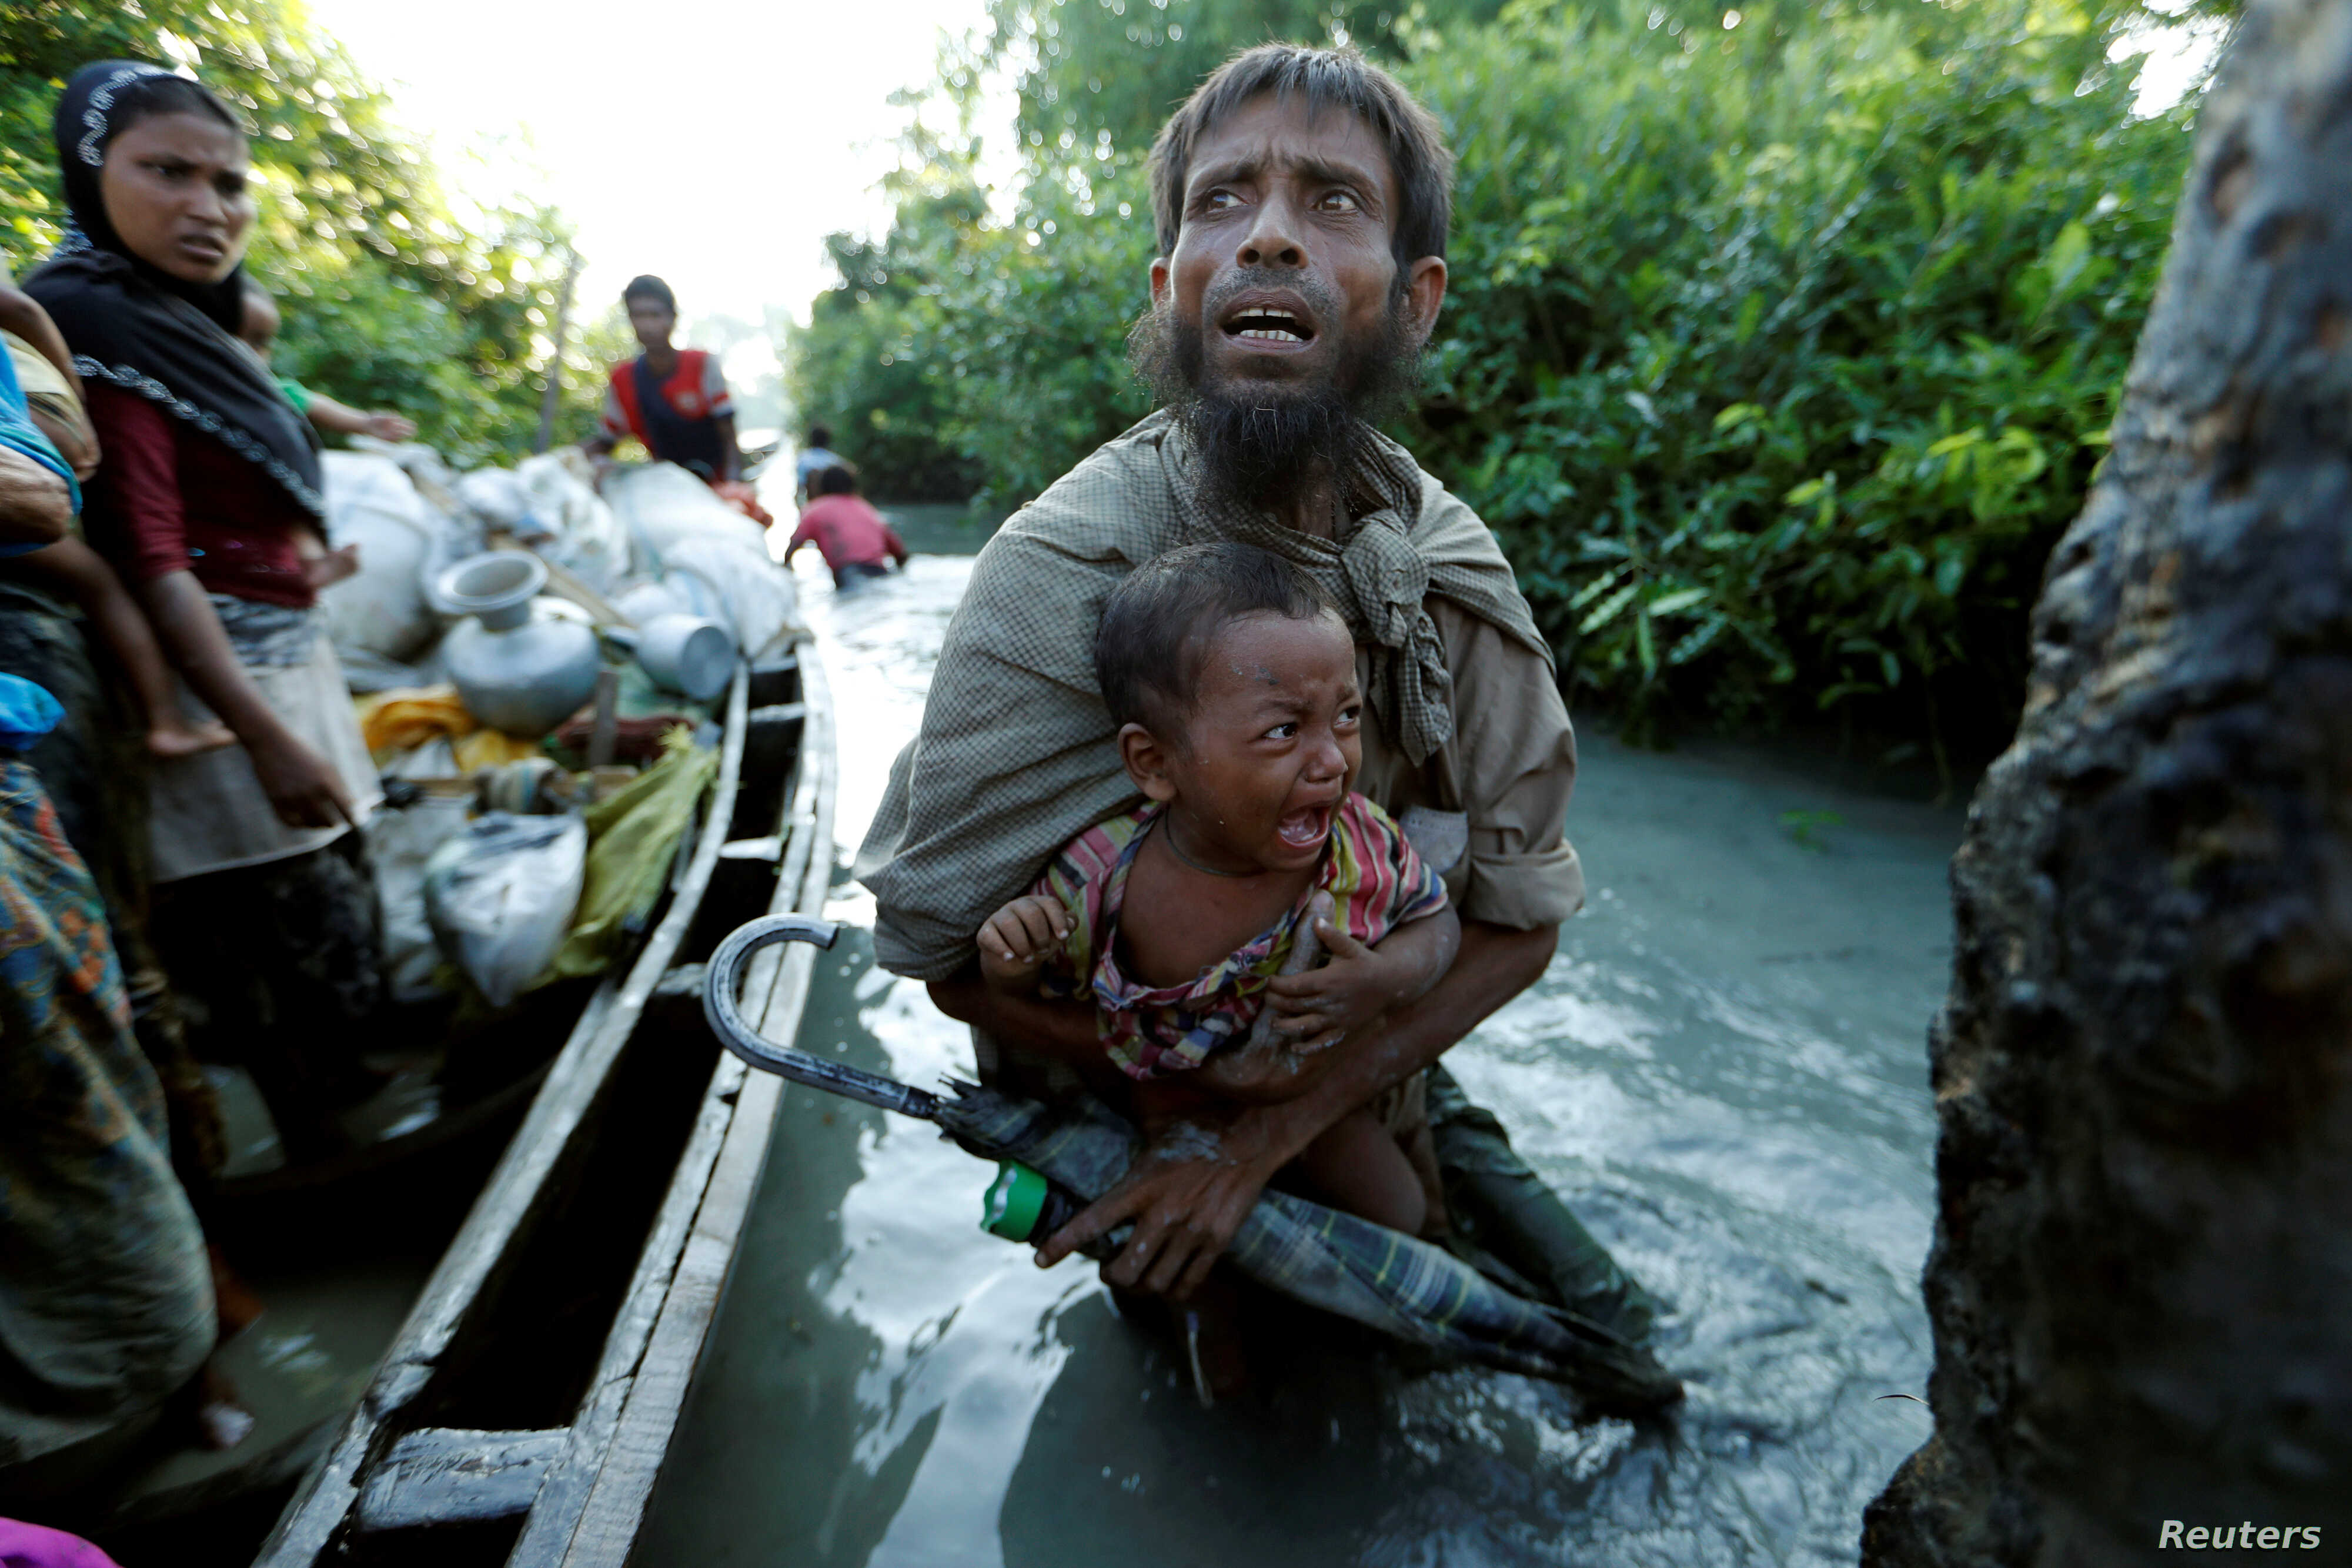 FILE - Rohingya refugees arrive to the Bangladeshi side of the Naf River after crossing the border from Myanmar, in Palang Khali, Bangladesh, Oct. 16, 2017.